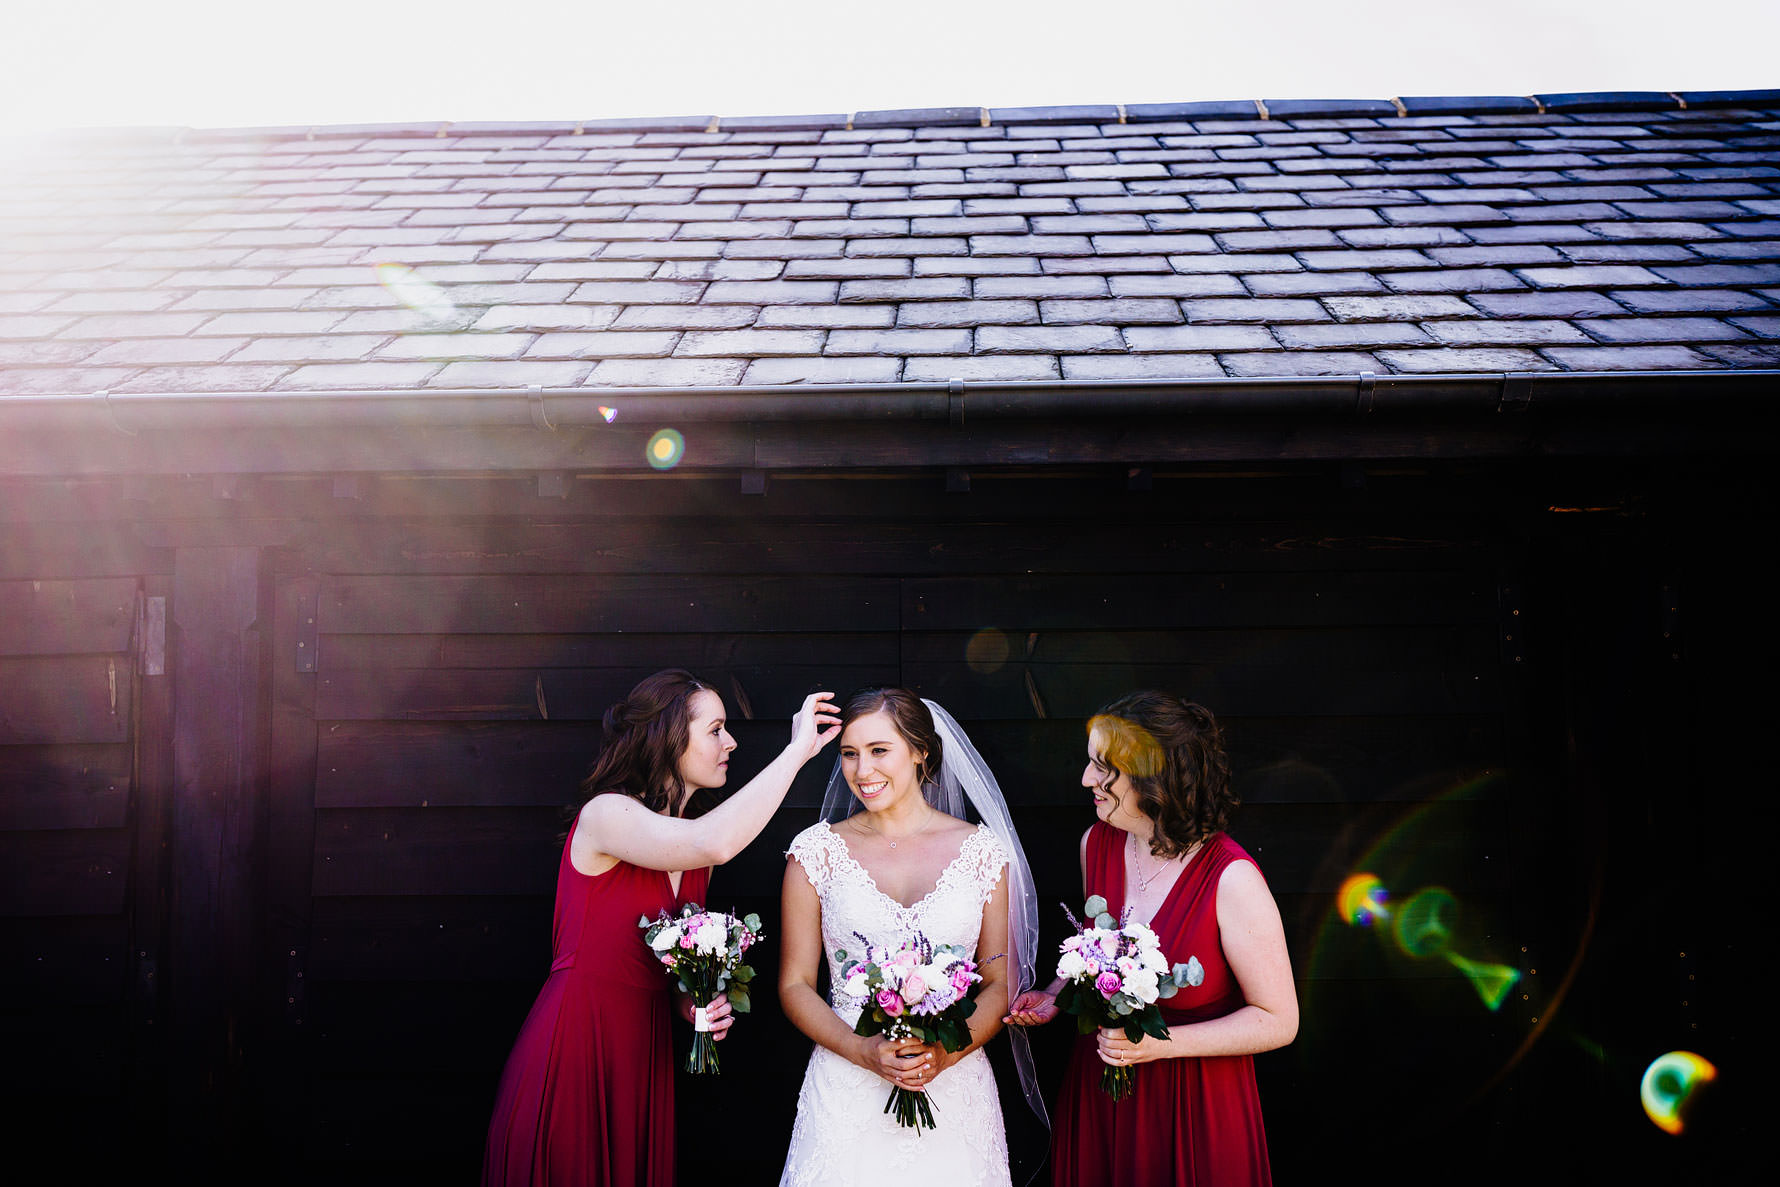 bridesmaids prepare a bride for a photograph